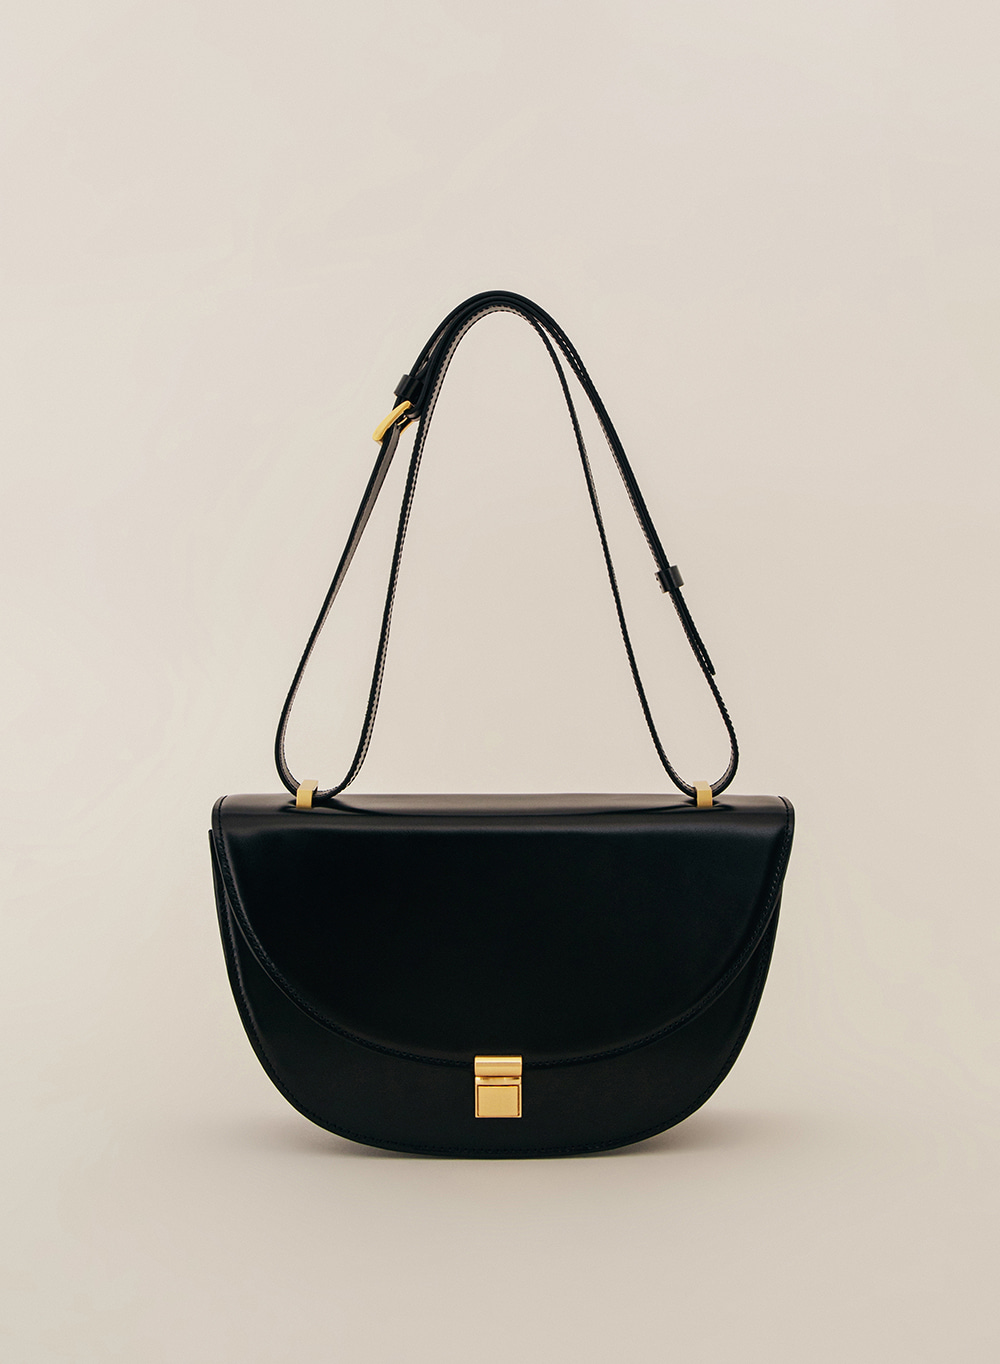 SS21 Classic Italian Leather Crossbody Black